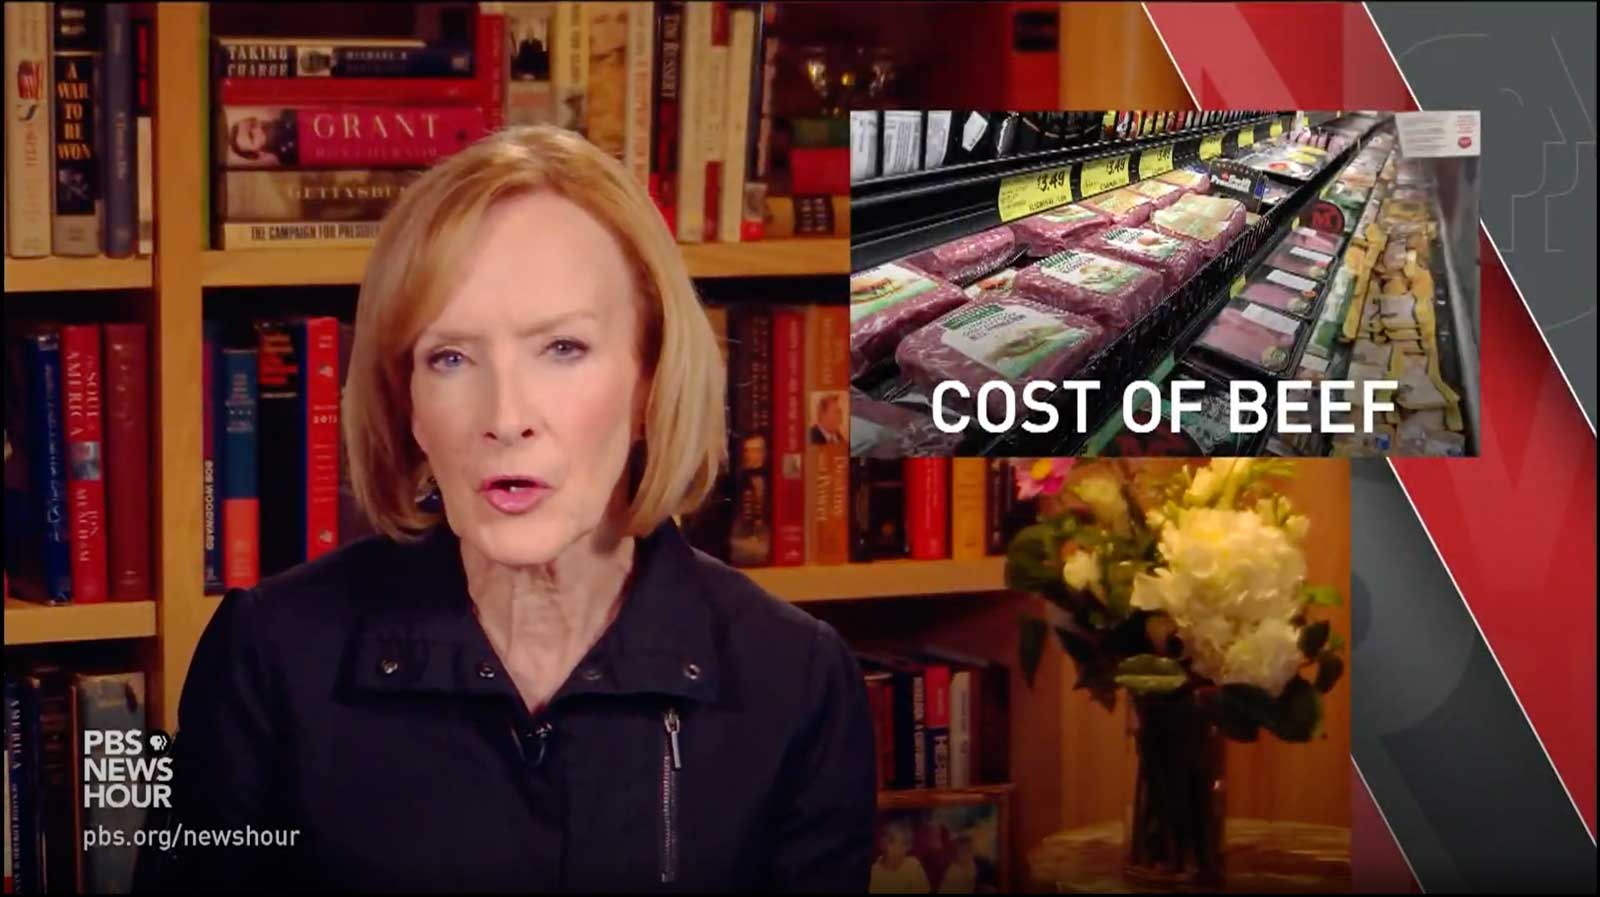 Screenshot of PBS NewsHour intro for Cost of Beef